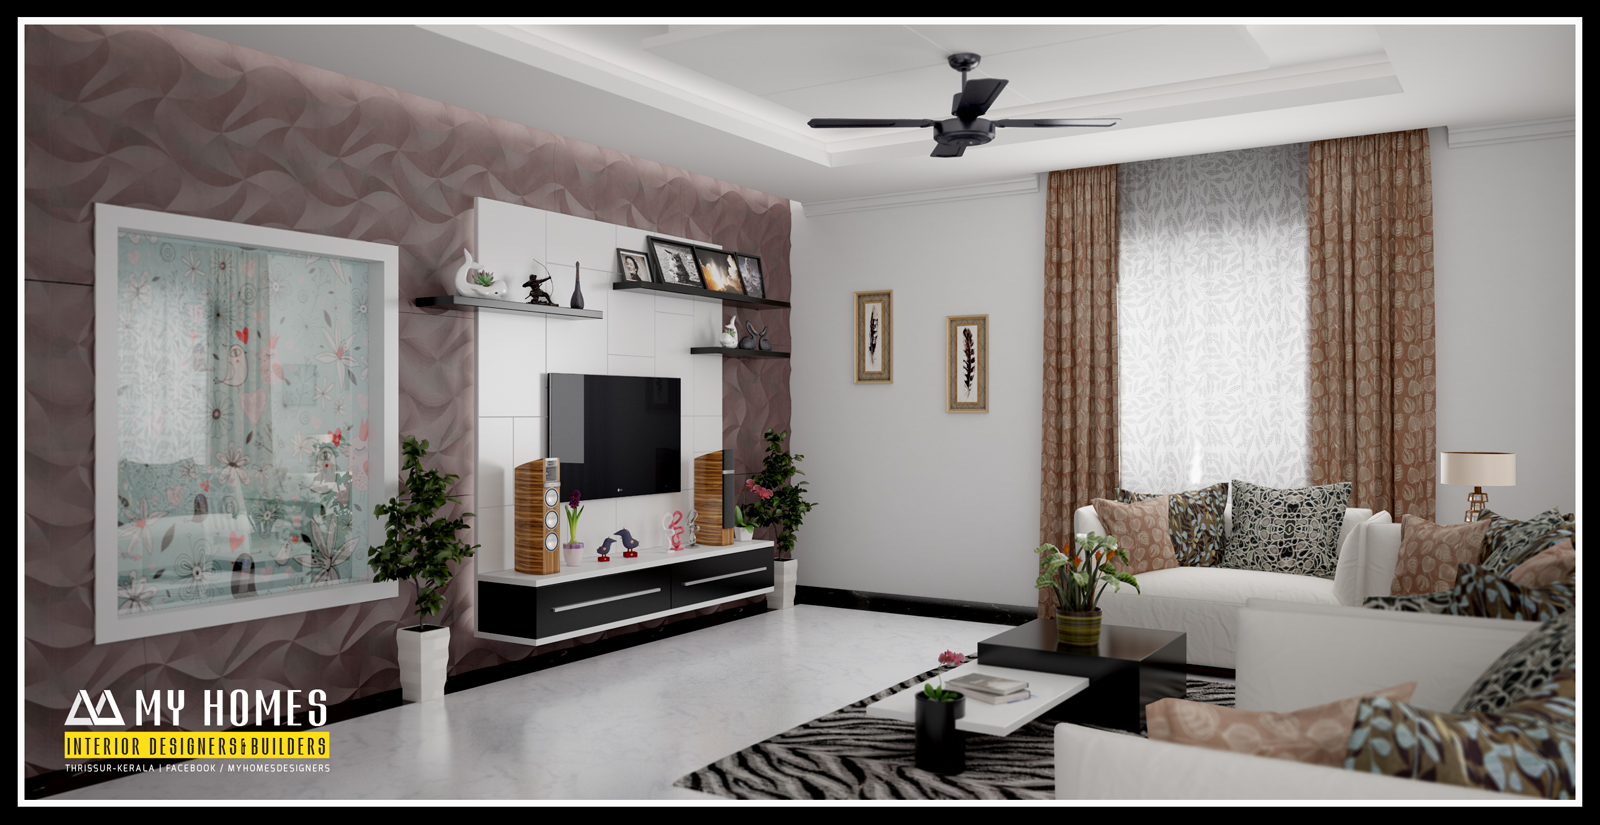 Kerala interior design ideas from designing company thrissur for Home inner design